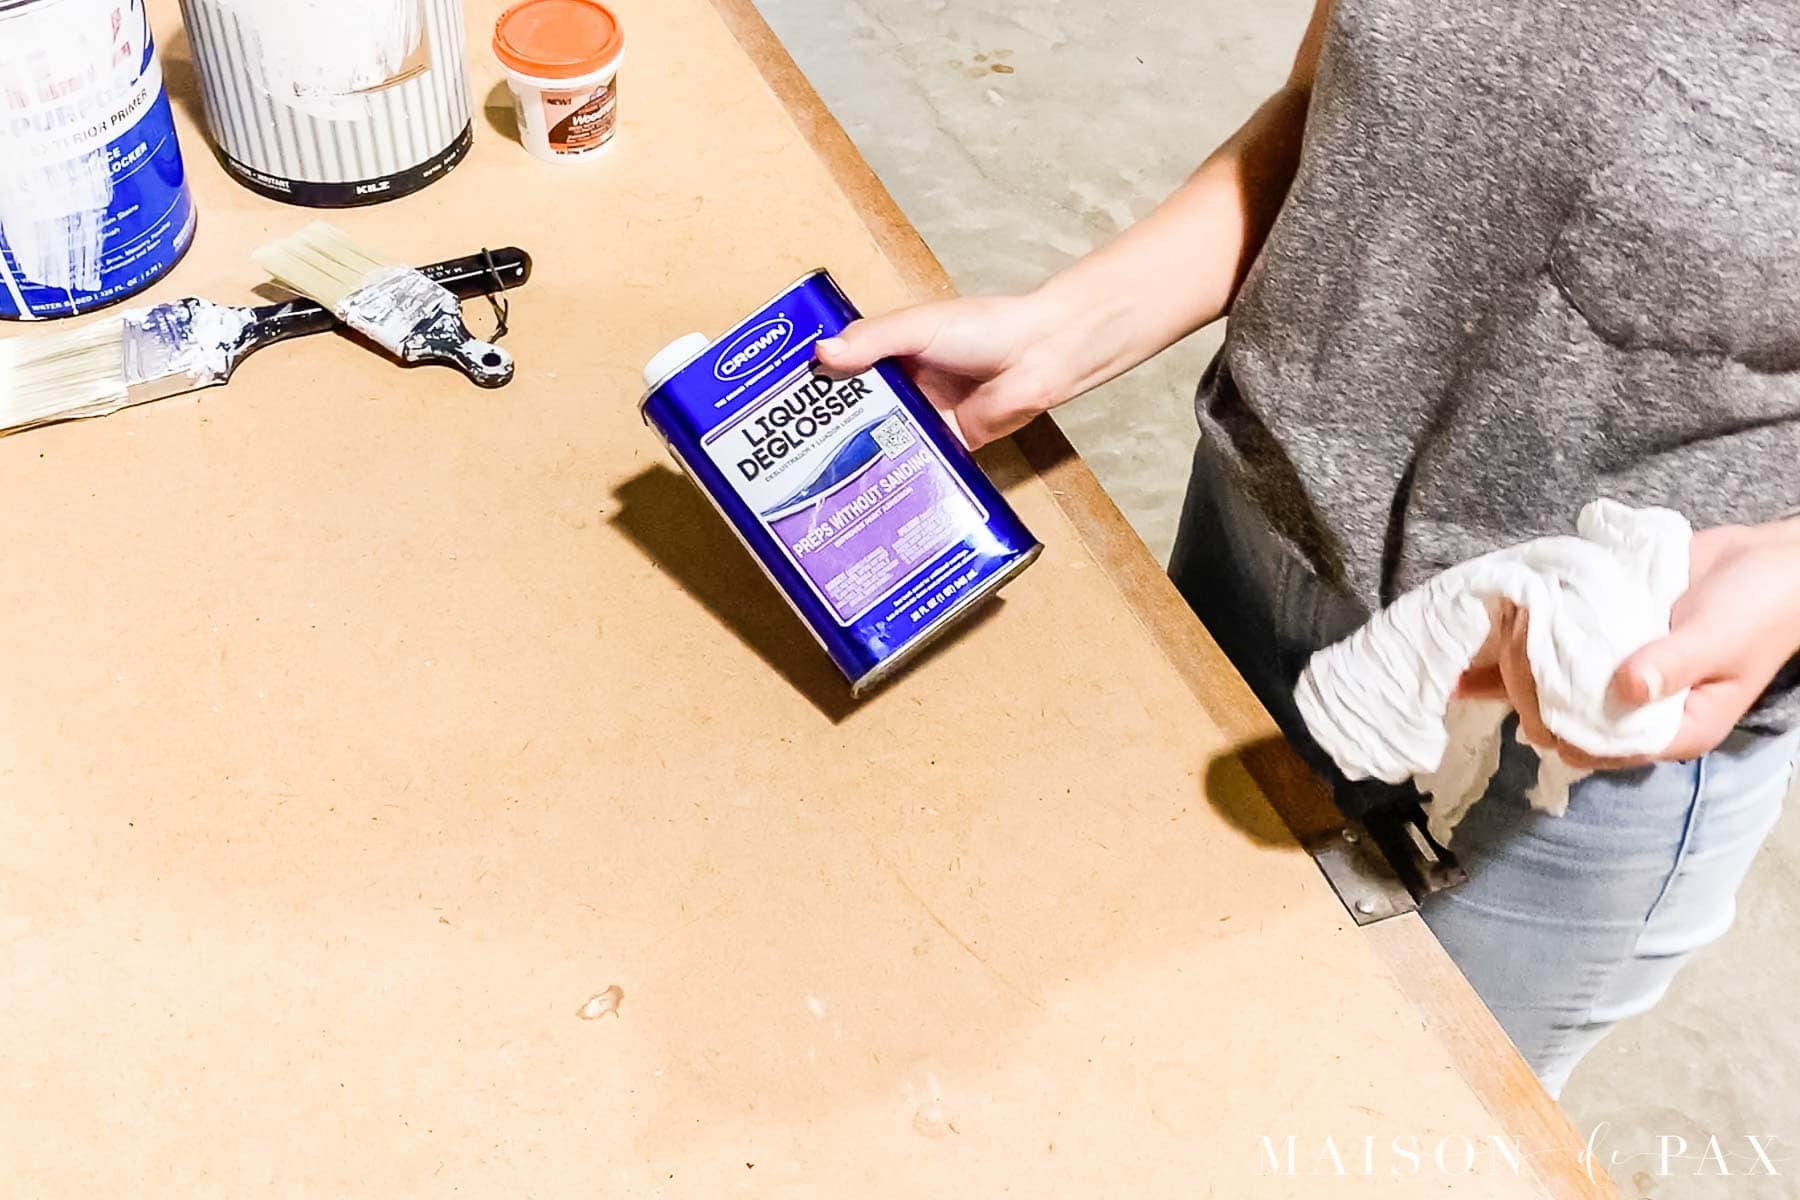 liquid deglosser to prep wood paneling before painting | Maison de Pax